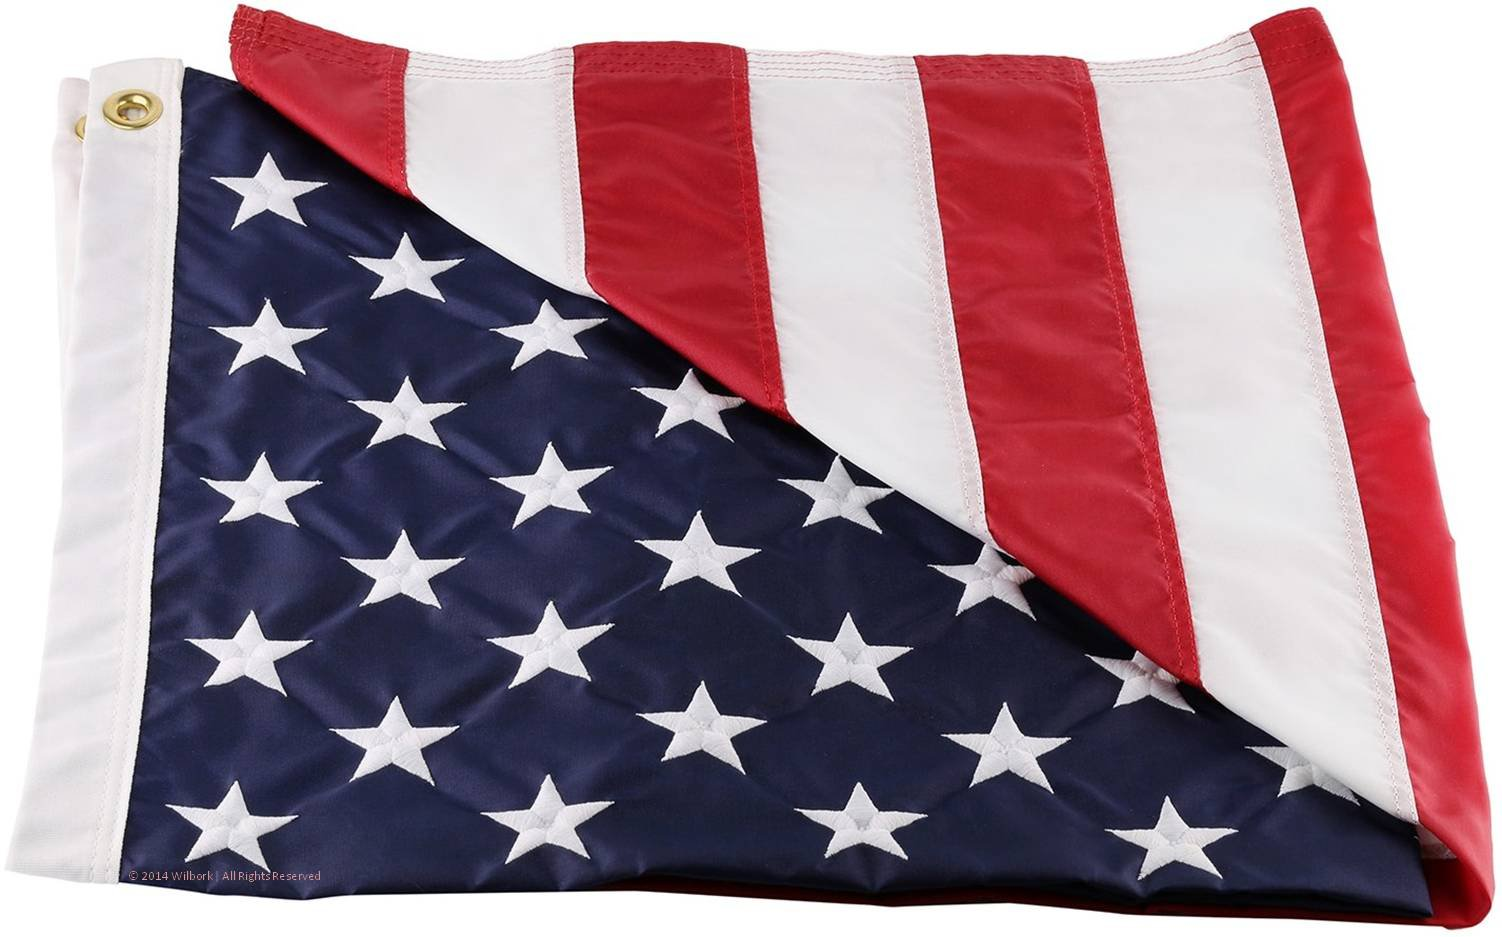 Wilbork American Flag - 100% Made in USA - Strong Like Americans Made by Americans: Embroidered Stars - Sewn Stripes 6x10 ft Outdoor Flag by Wilbork (Image #1)